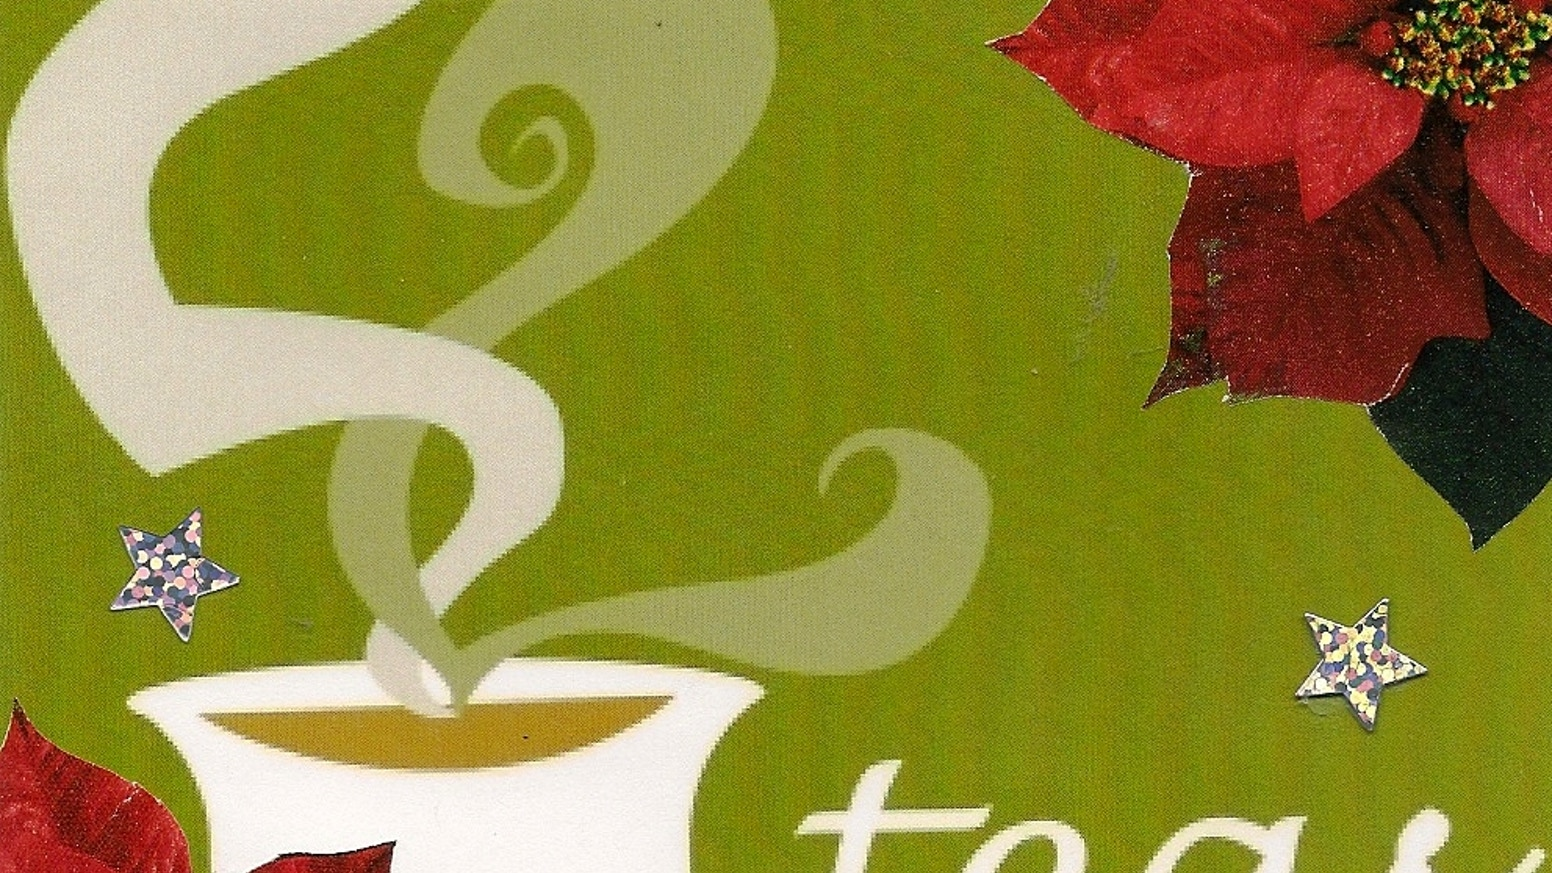 Christmas is Coming! Give the gift of TEA to those tea lovers on your list - even if that tea lover is YOU!